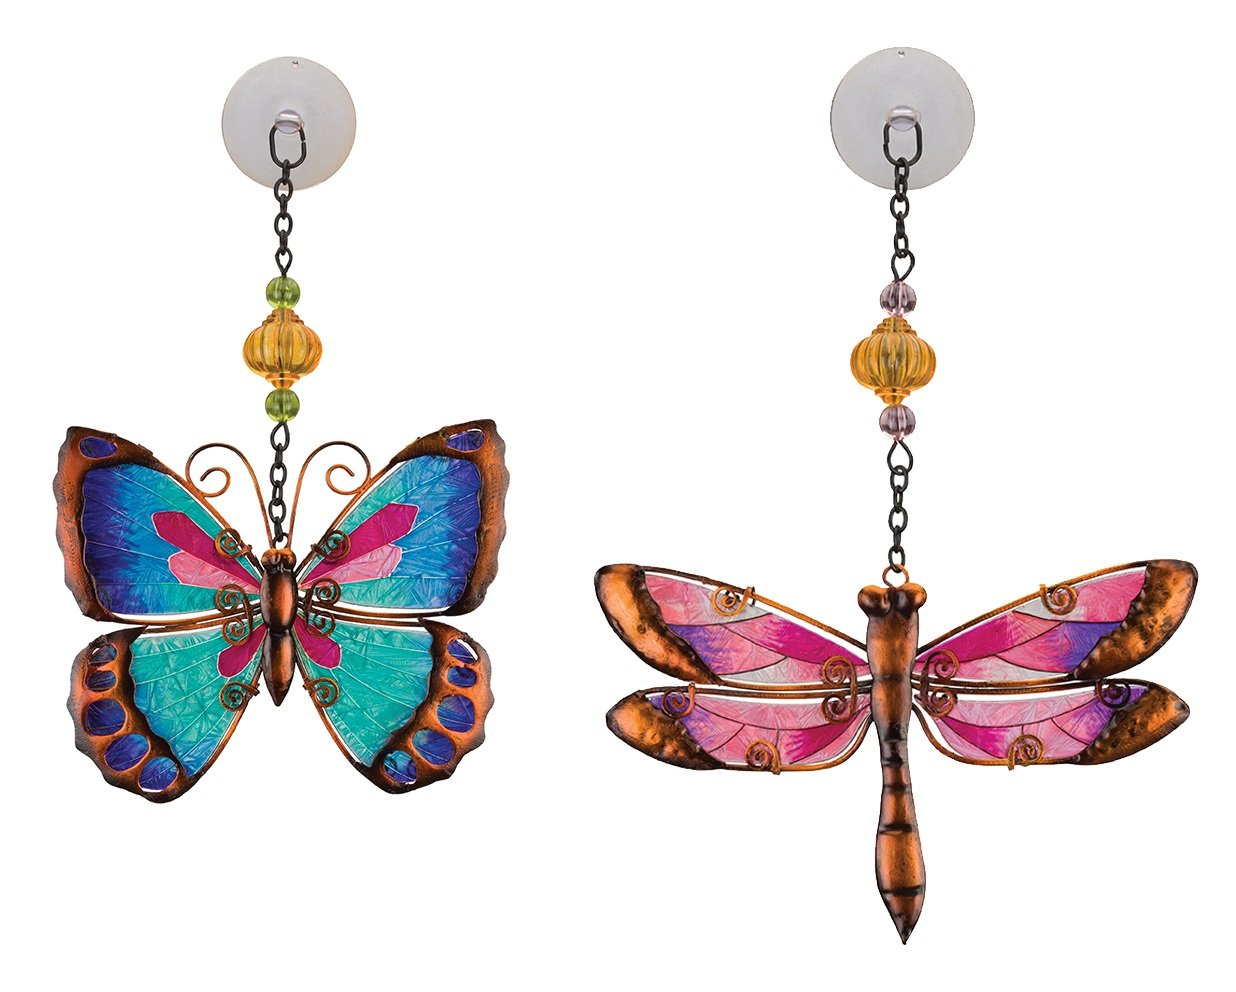 Regal Art & Gift Suncatchers for Home, Garden, Window and Wall Art (Pink Dragonfly & Green Butterfly) by Regal Art & Gift